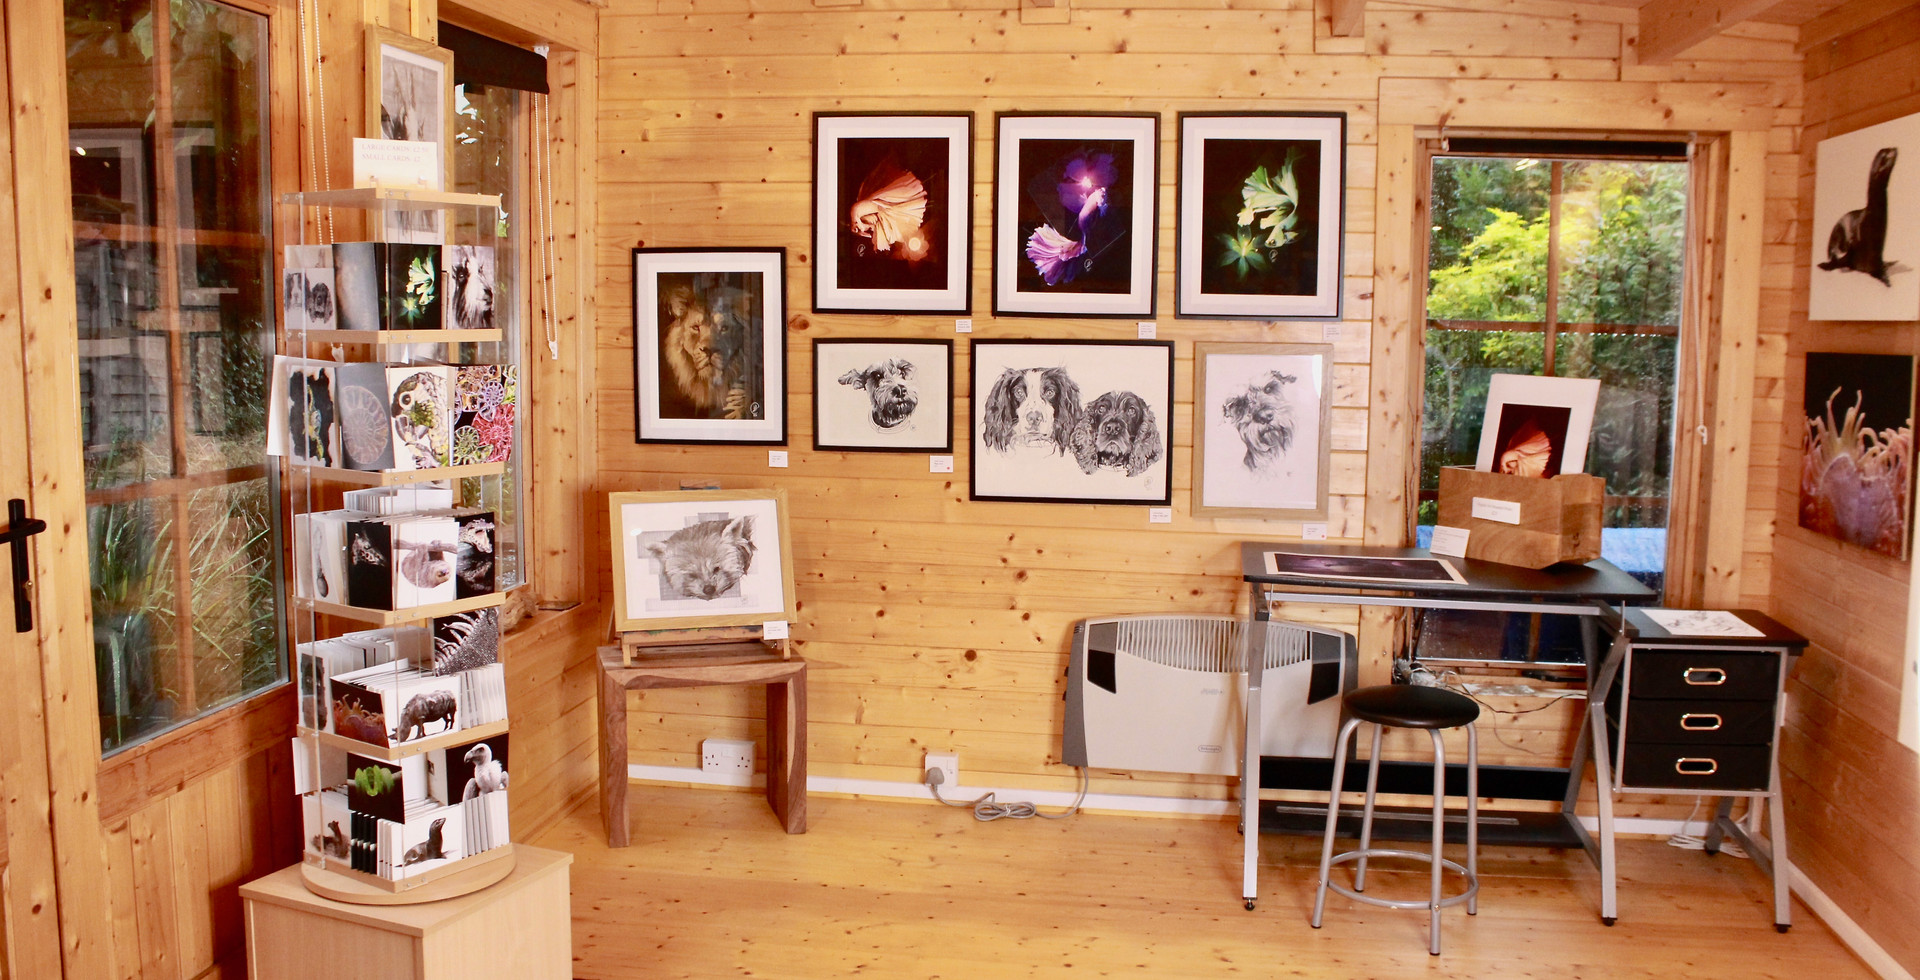 View of Exhibition Space